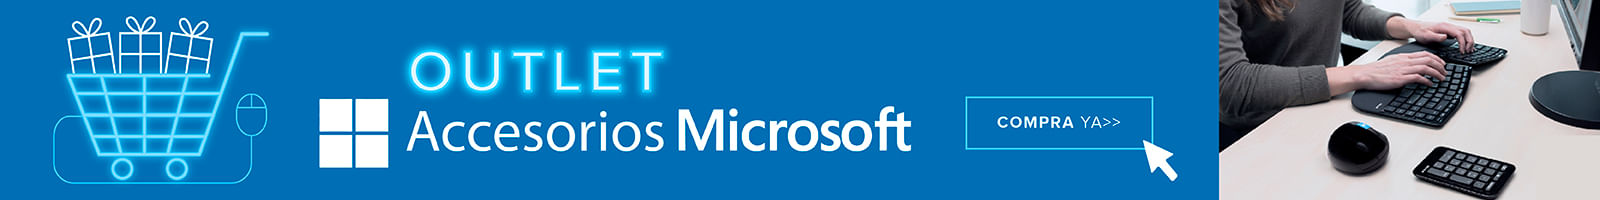 Outlet-microsoft